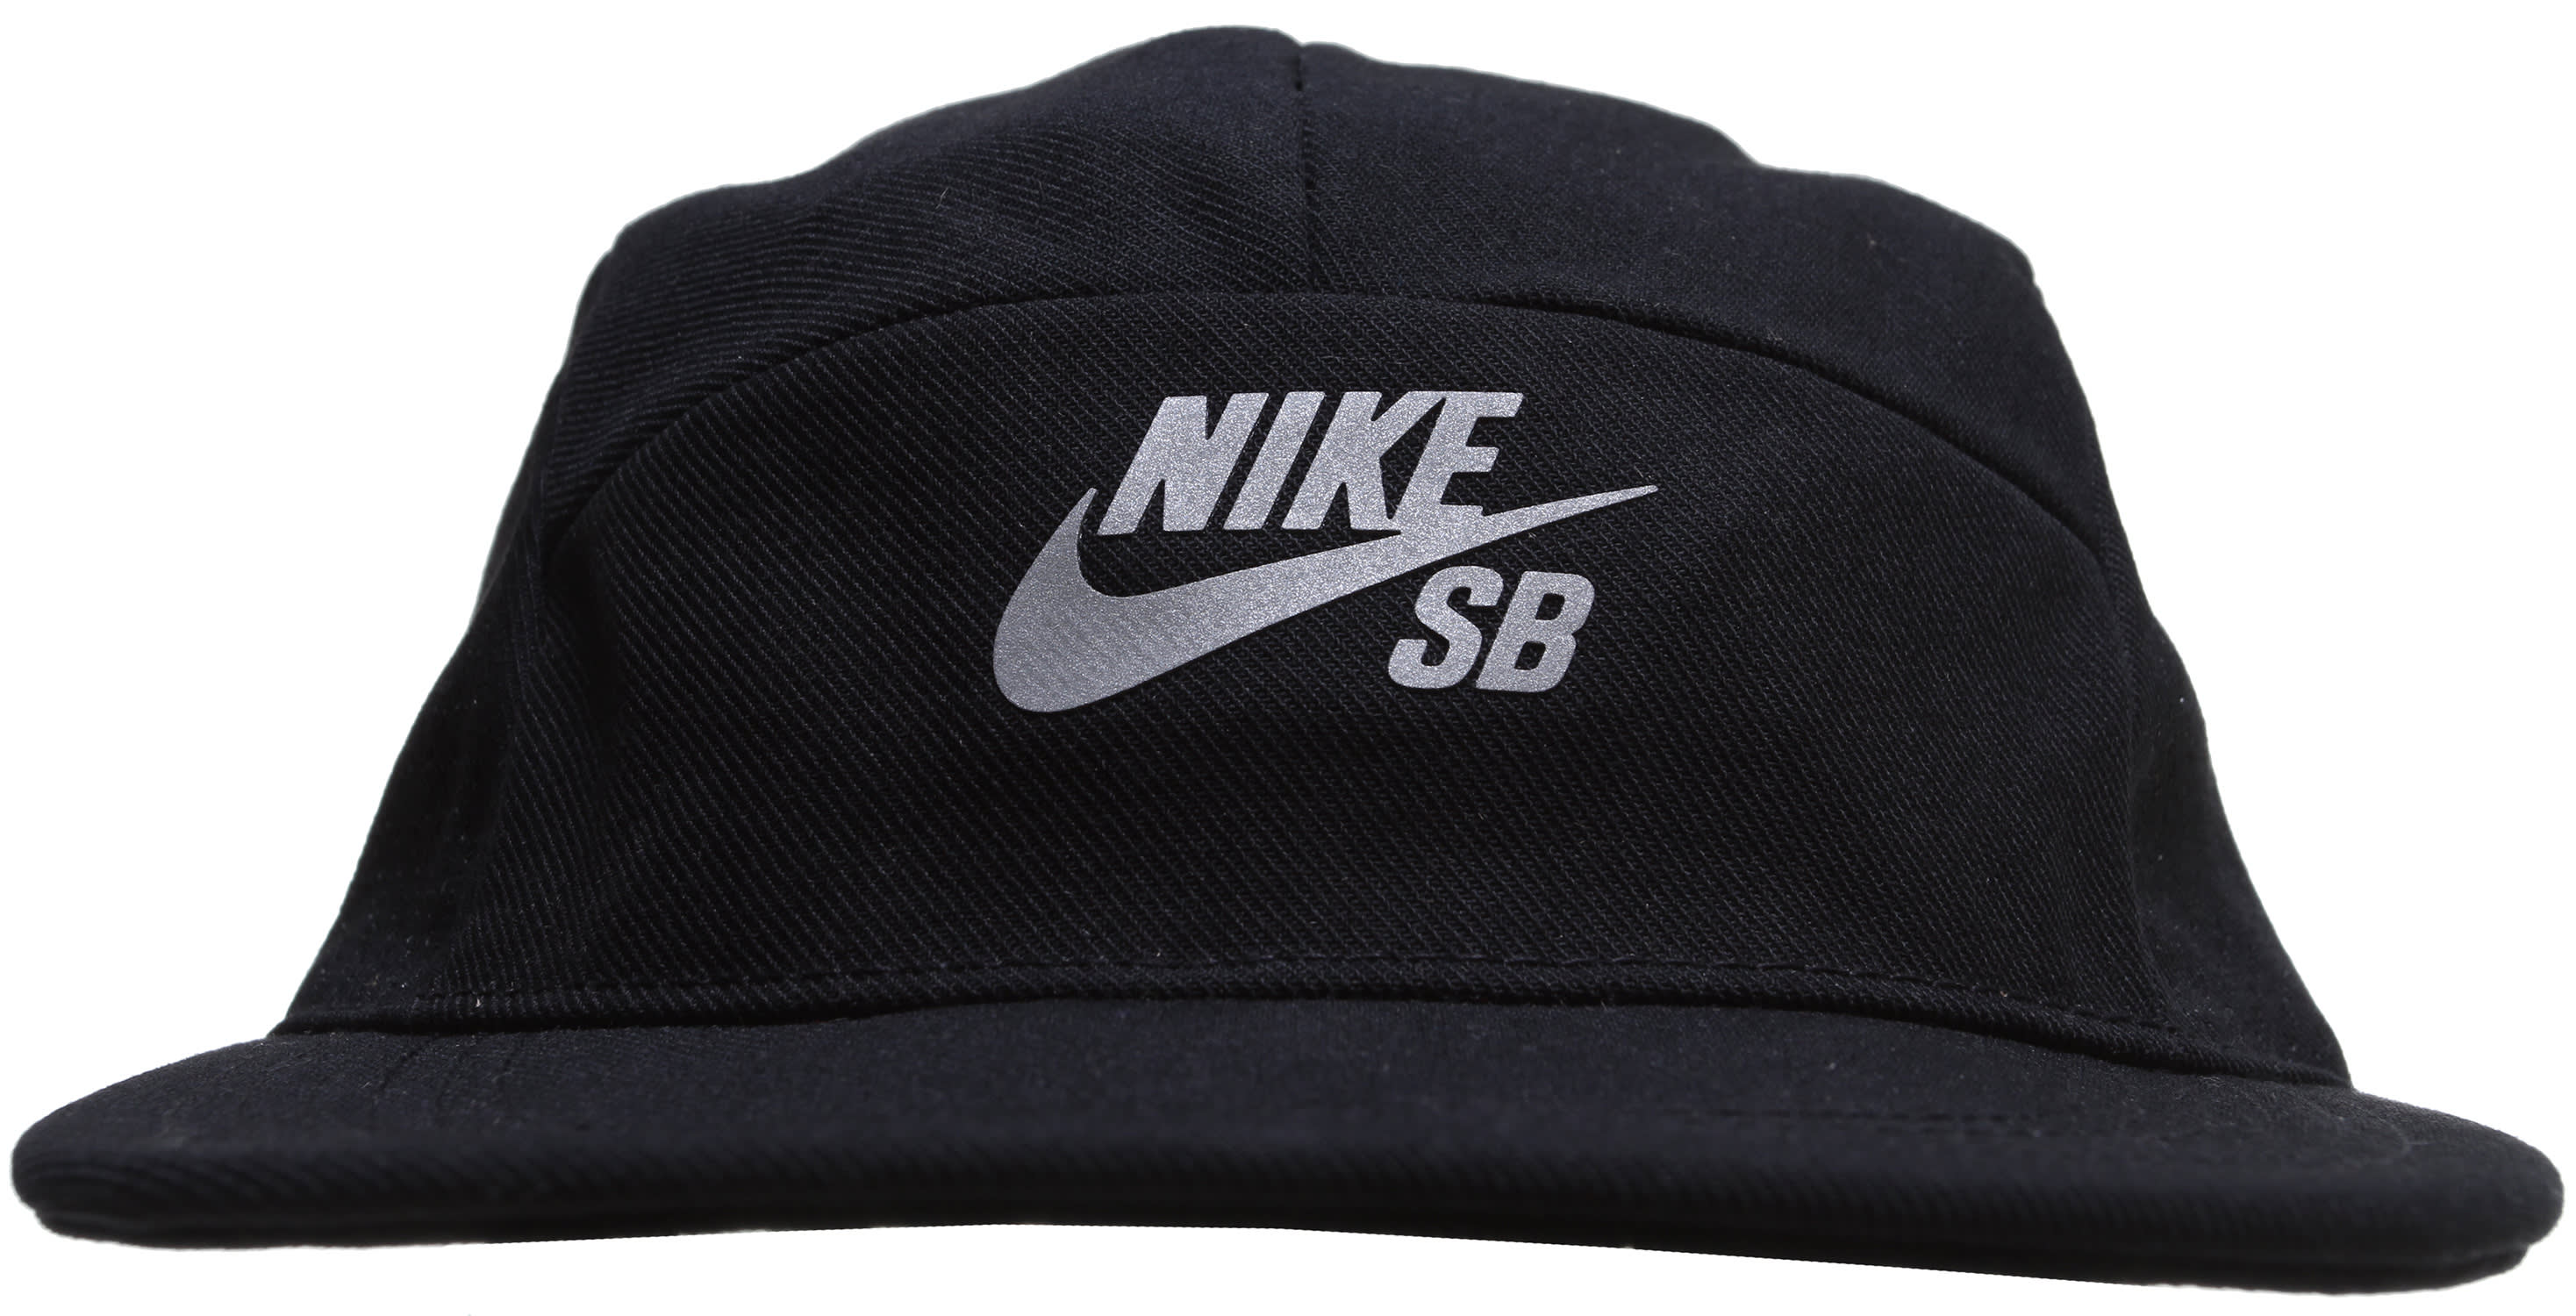 Nike SB Performance 5-Panel Cap - thumbnail 1 06694013e05